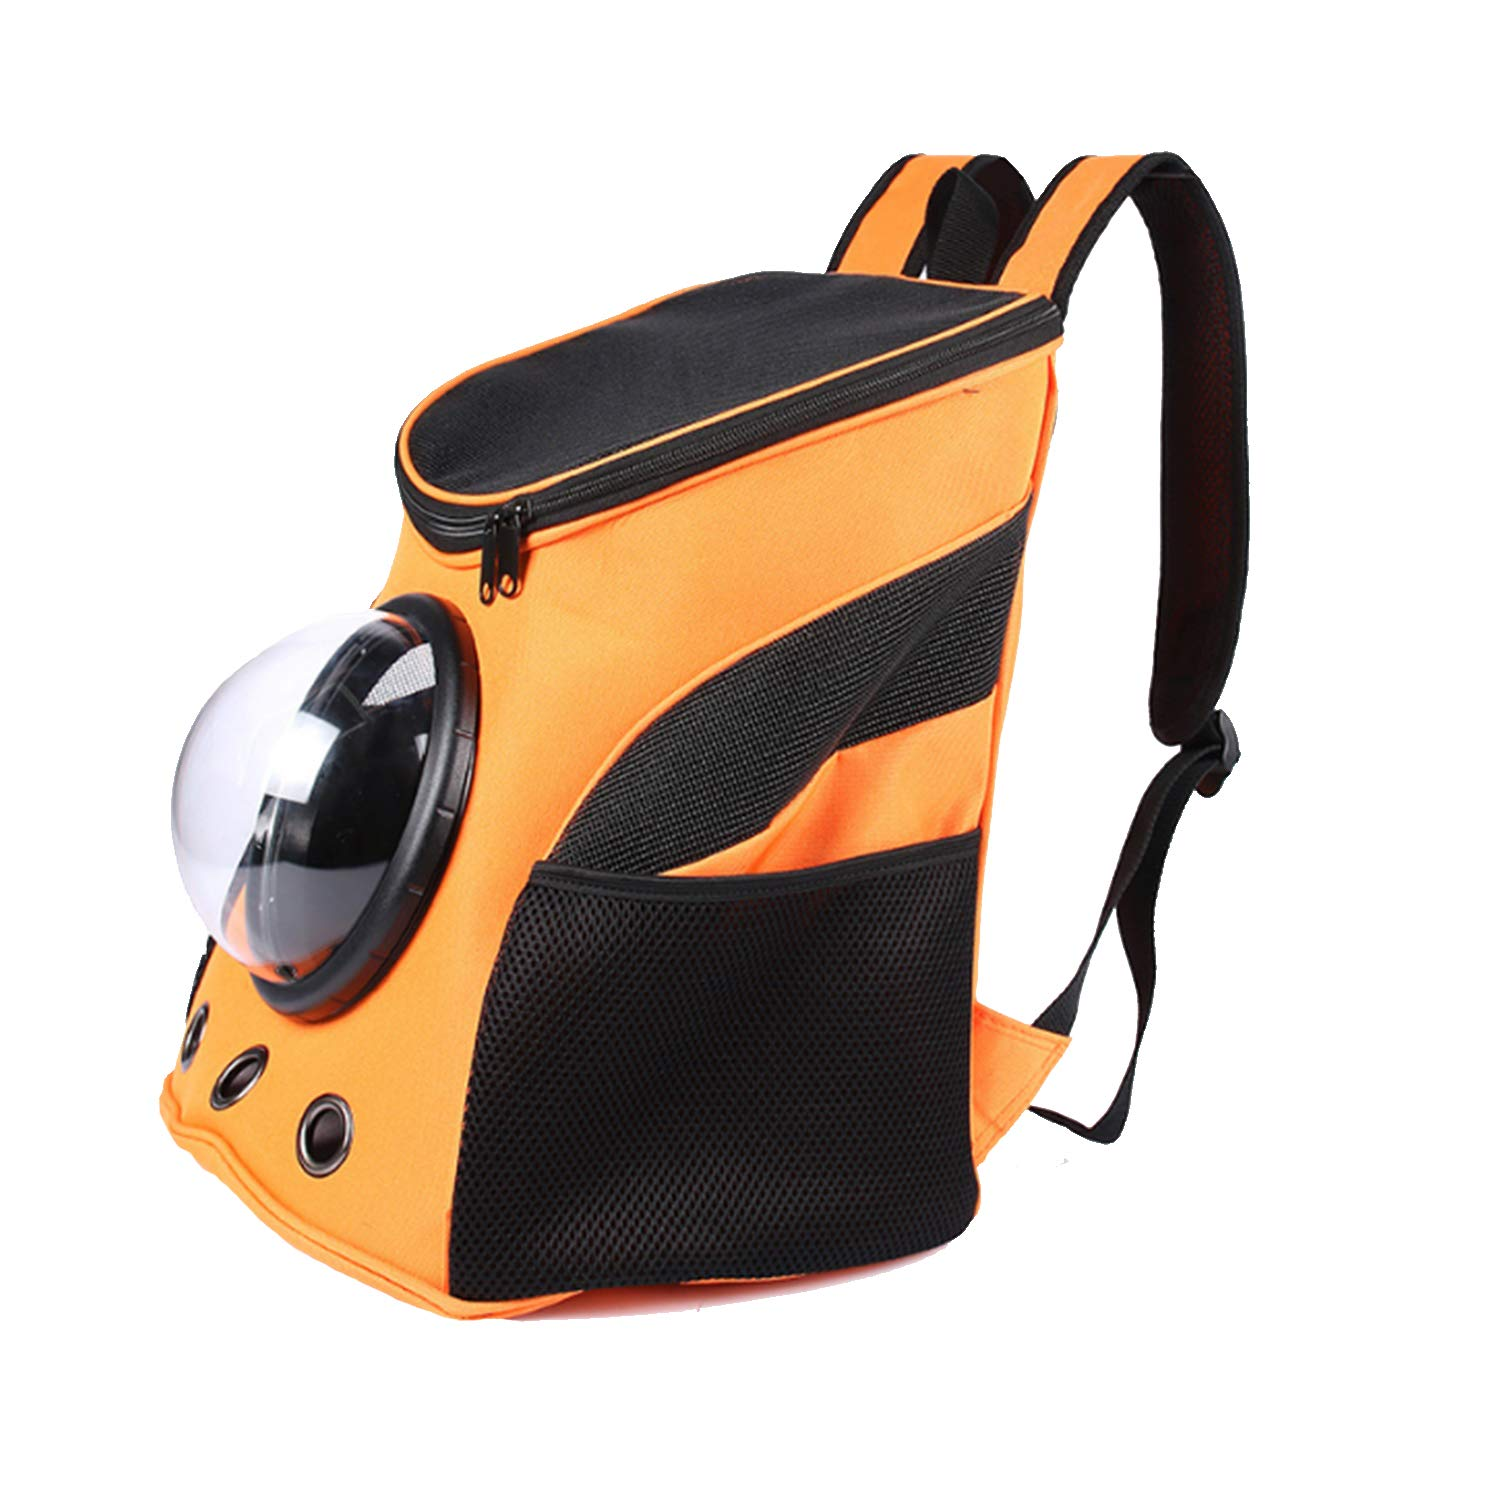 orange JYMDH Astronaut Pet Cat Dog Puppy Bag Carrier Travel Bag Breathable Waterproof Space Capsule Backpack Pet Backpack Carrier For Cat Dog,bluee